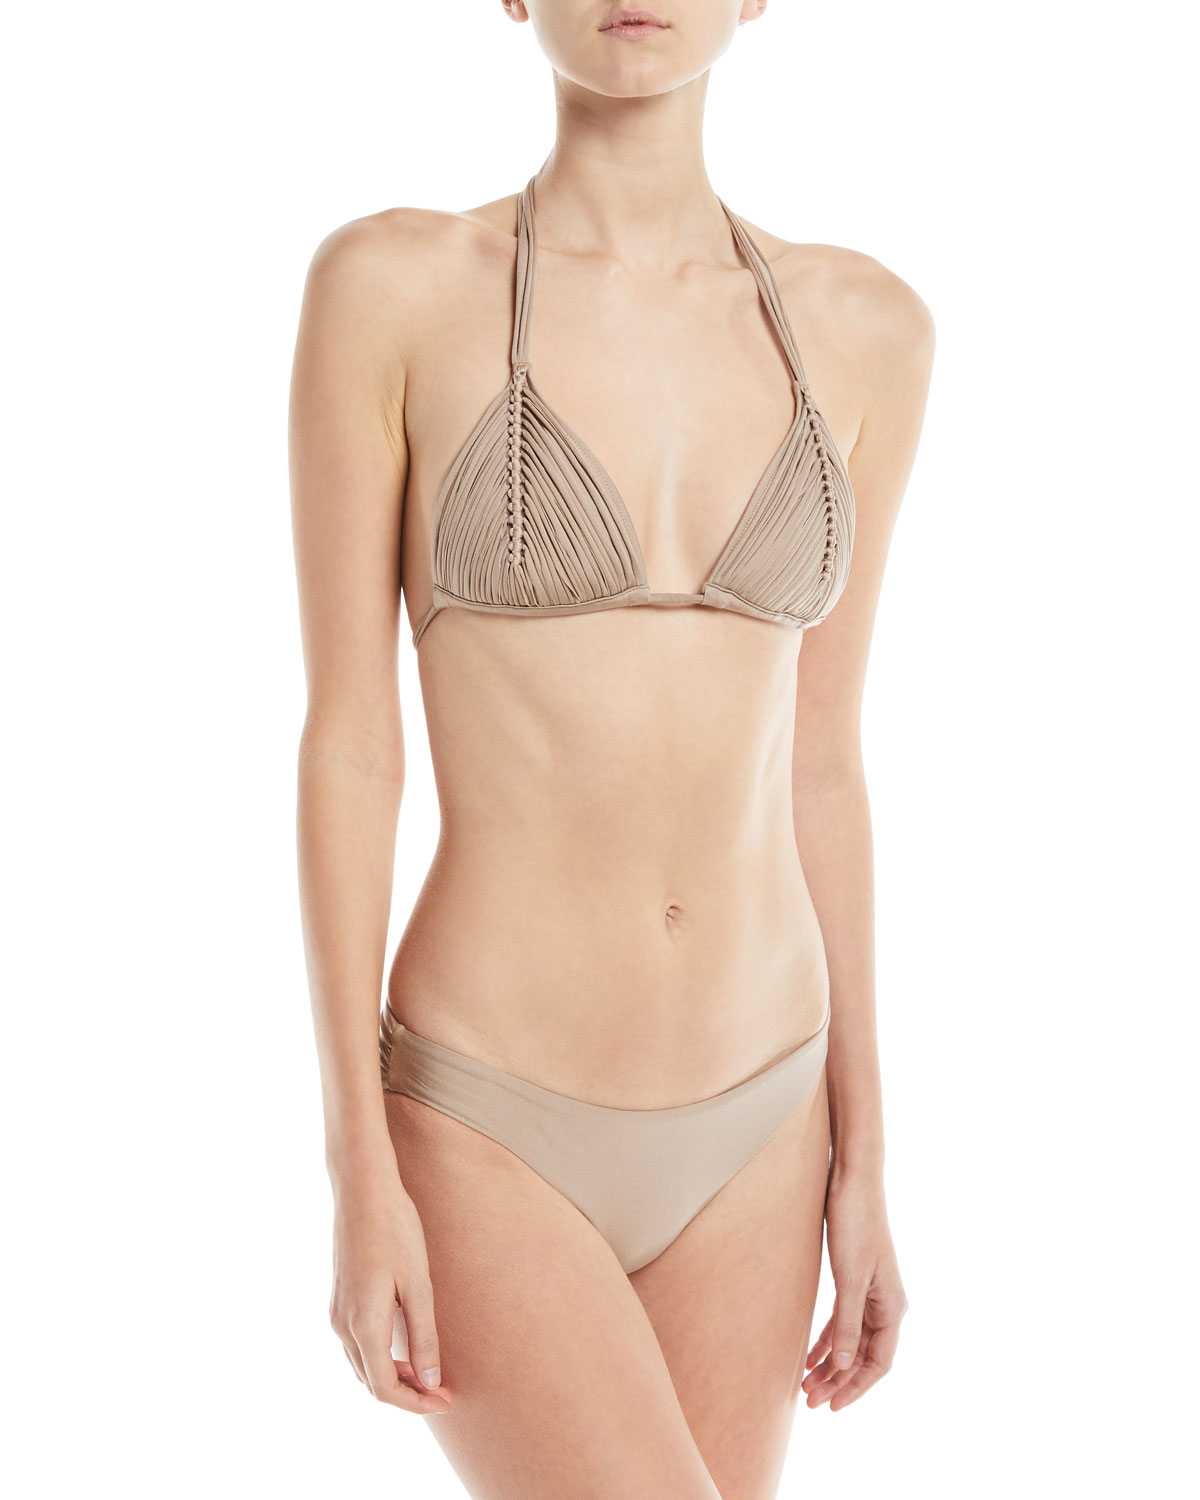 Isla Solid Braided Triangle Swim Top Sand (Available in D Cup)